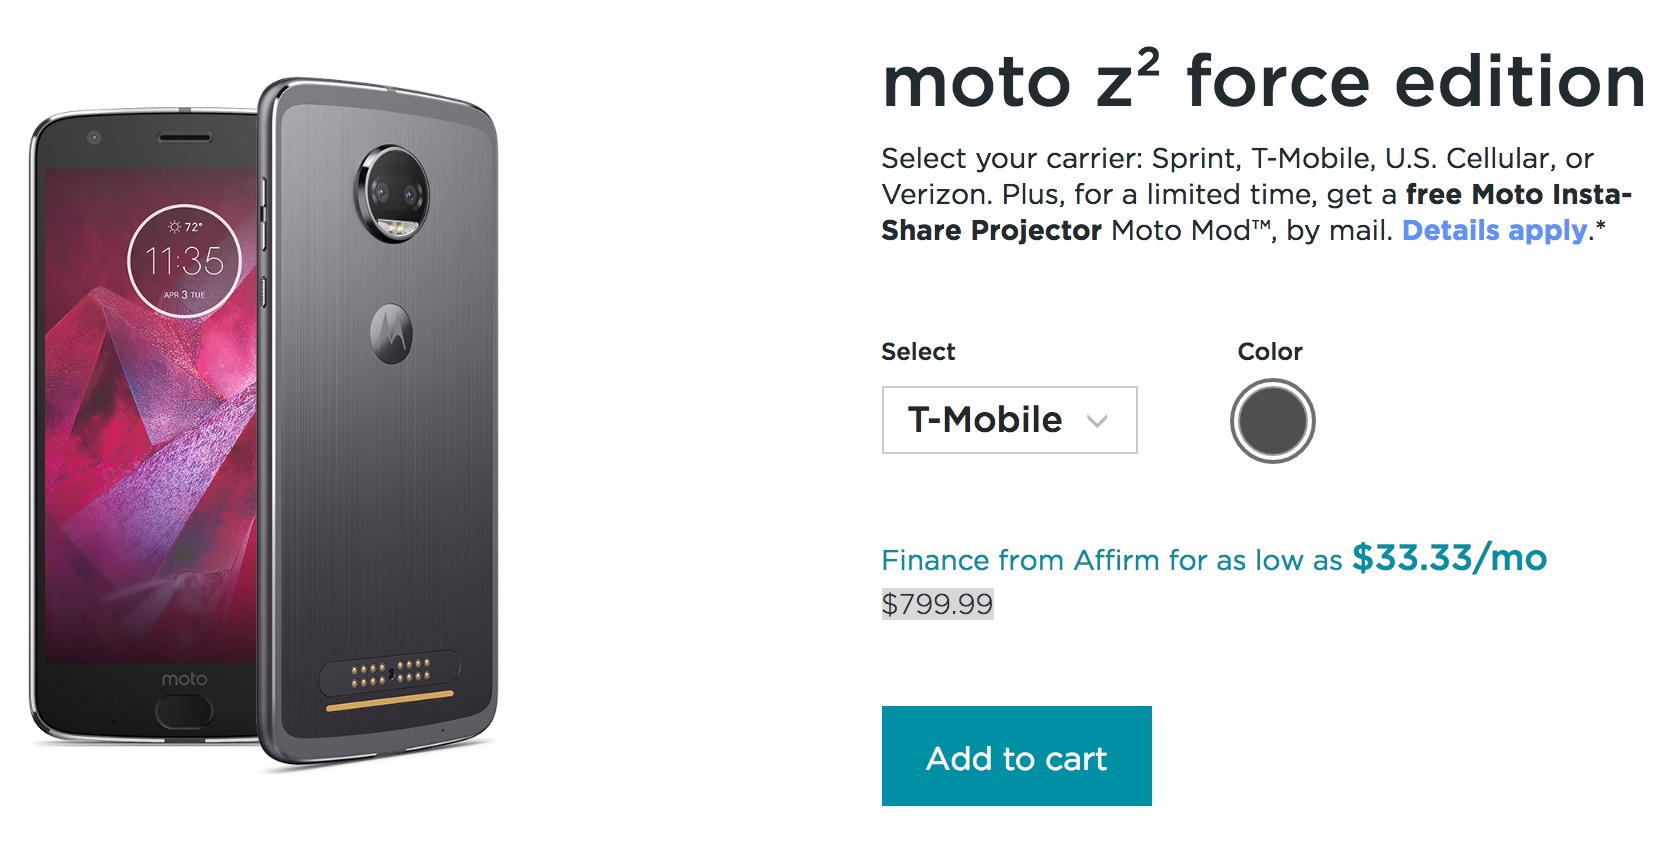 This is the Moto Z2 Force (Specs, Price, Features, Release Date)